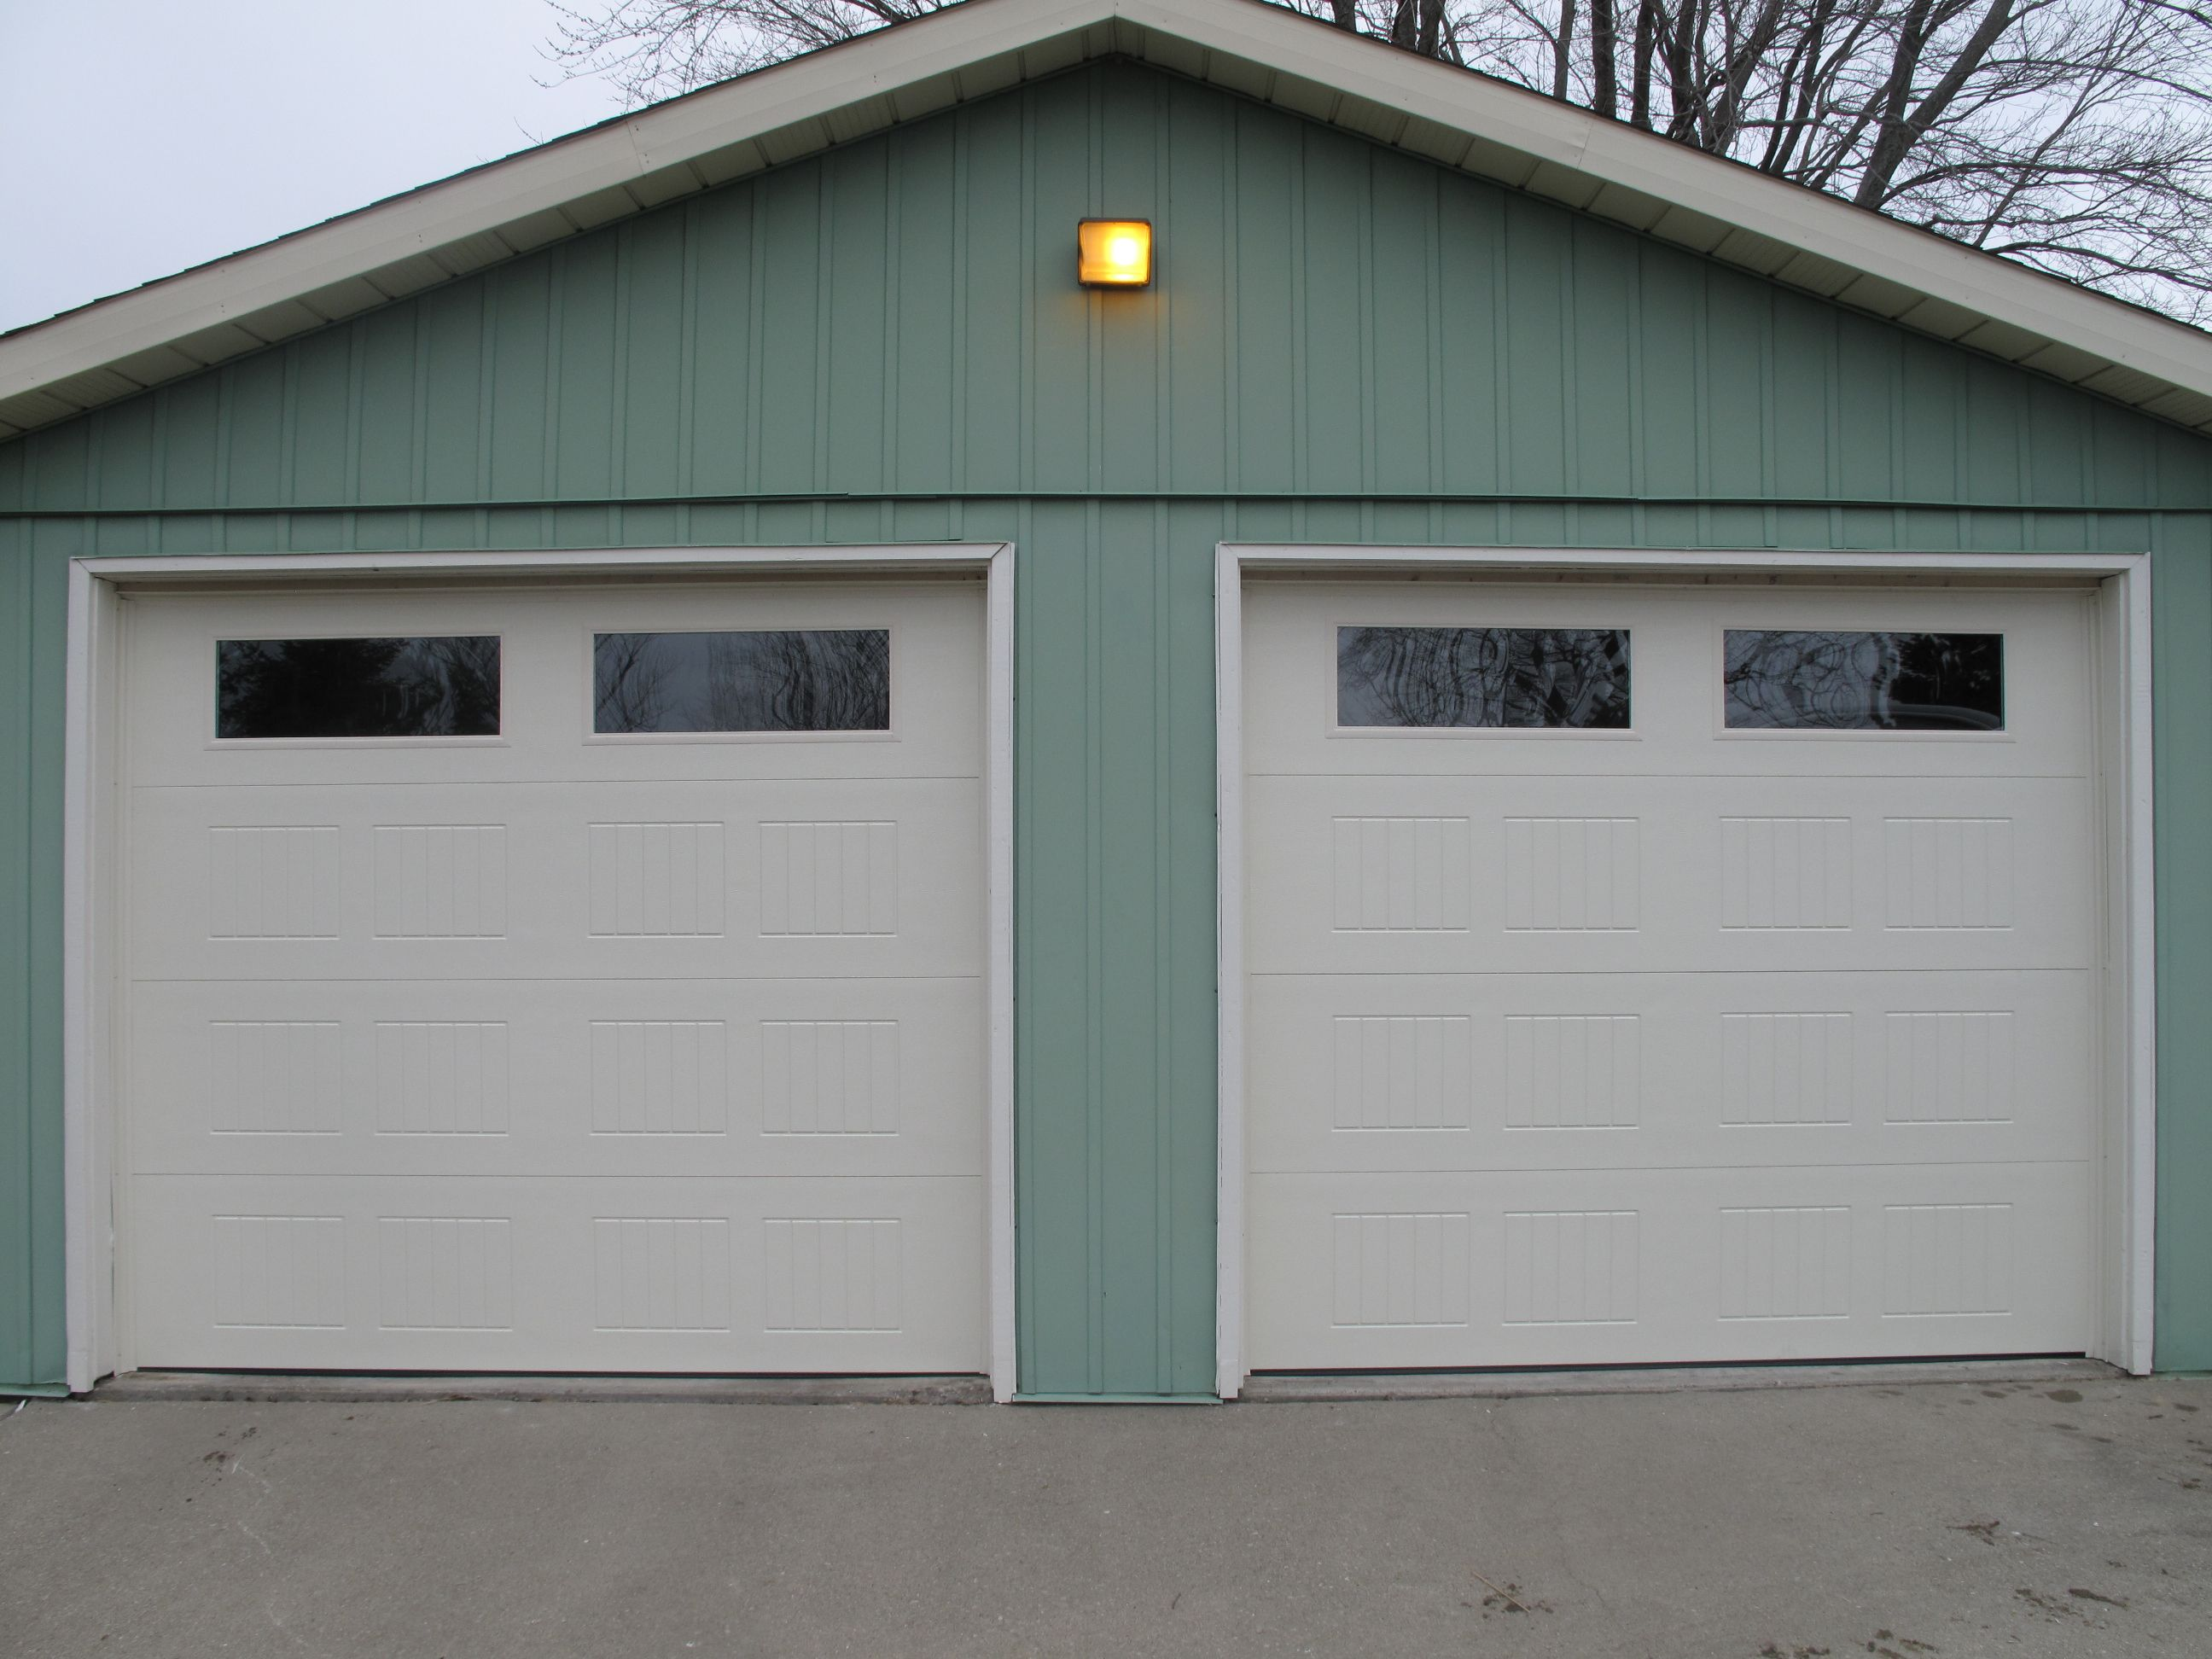 wood garage grove hottechreviews best us of door house stock carriage tudor beautiful city